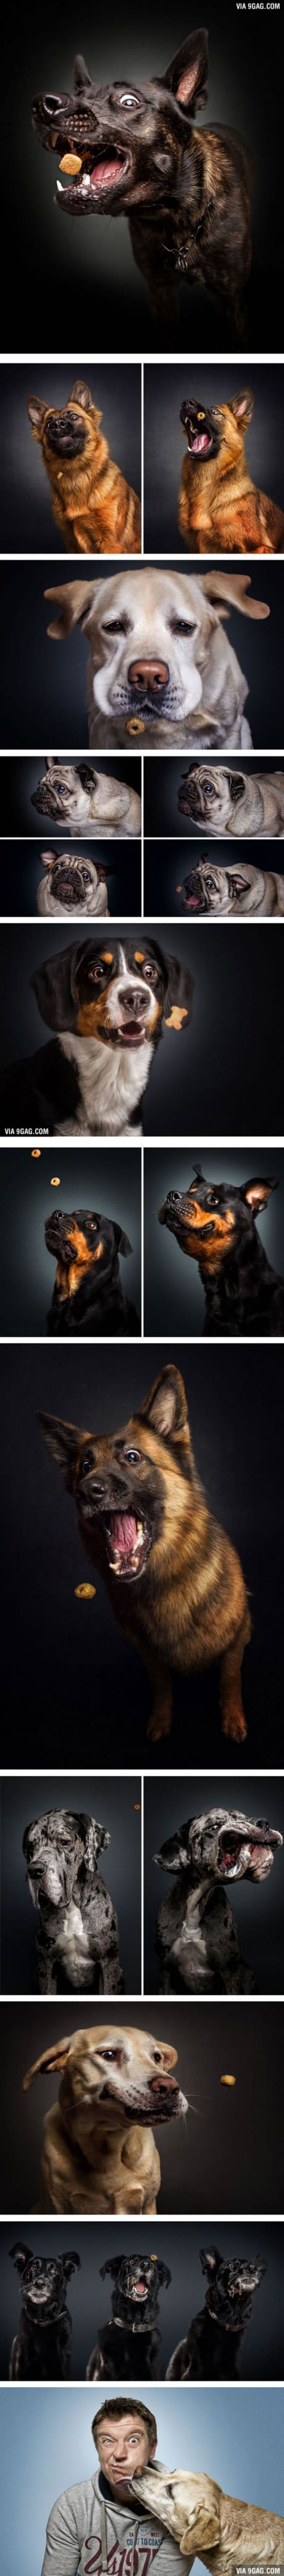 Photographer Captures Hungry Dogs' Funny Faces When They Catch Treats (By Christian Vieler):